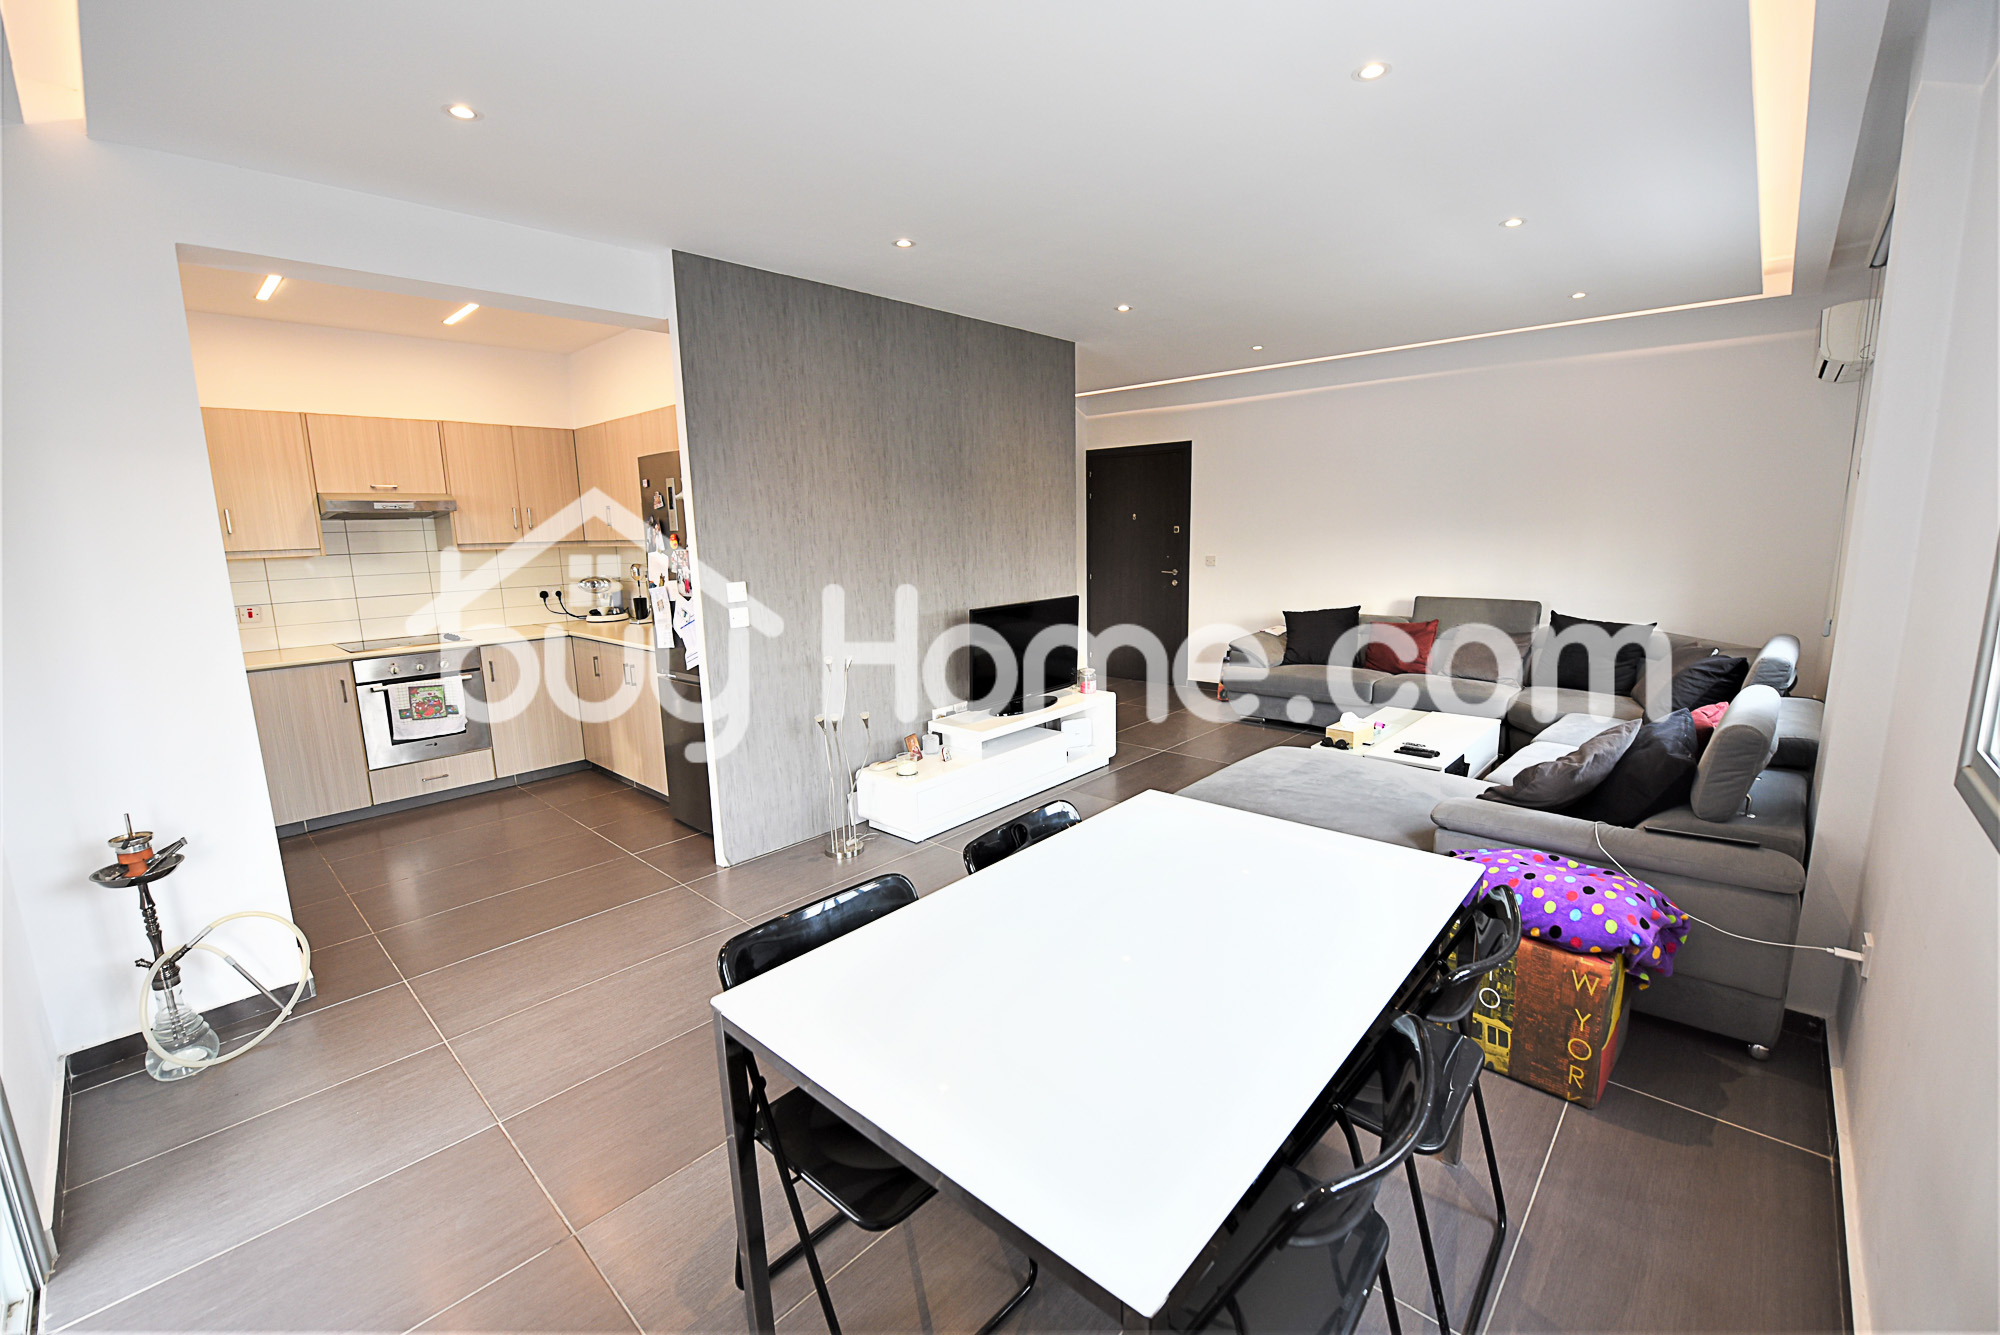 Spacious Modern 3 Bed Apartment | BuyHome